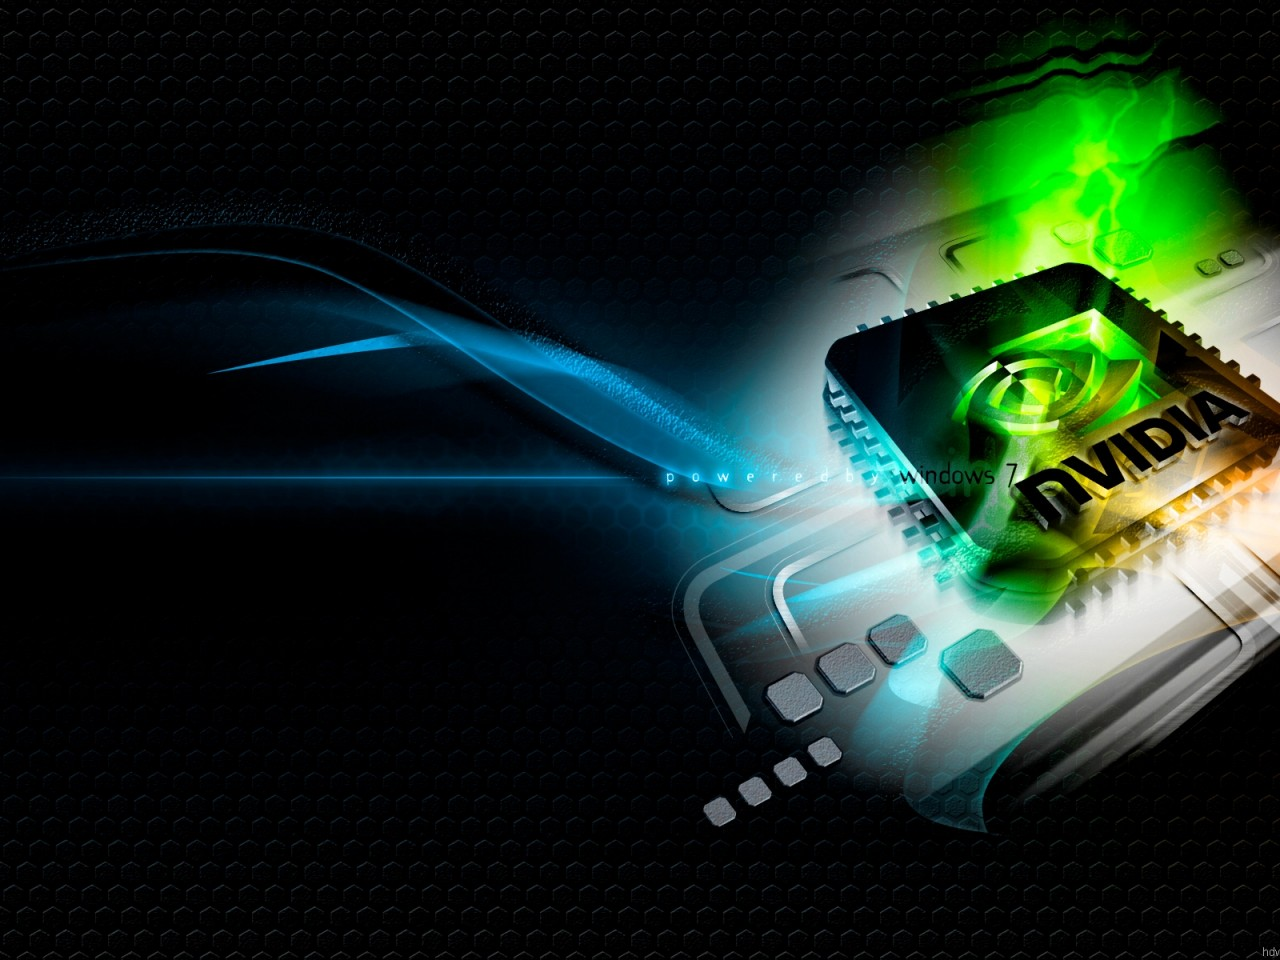 windows 7 nvidia wallpaper - hd wallpapers